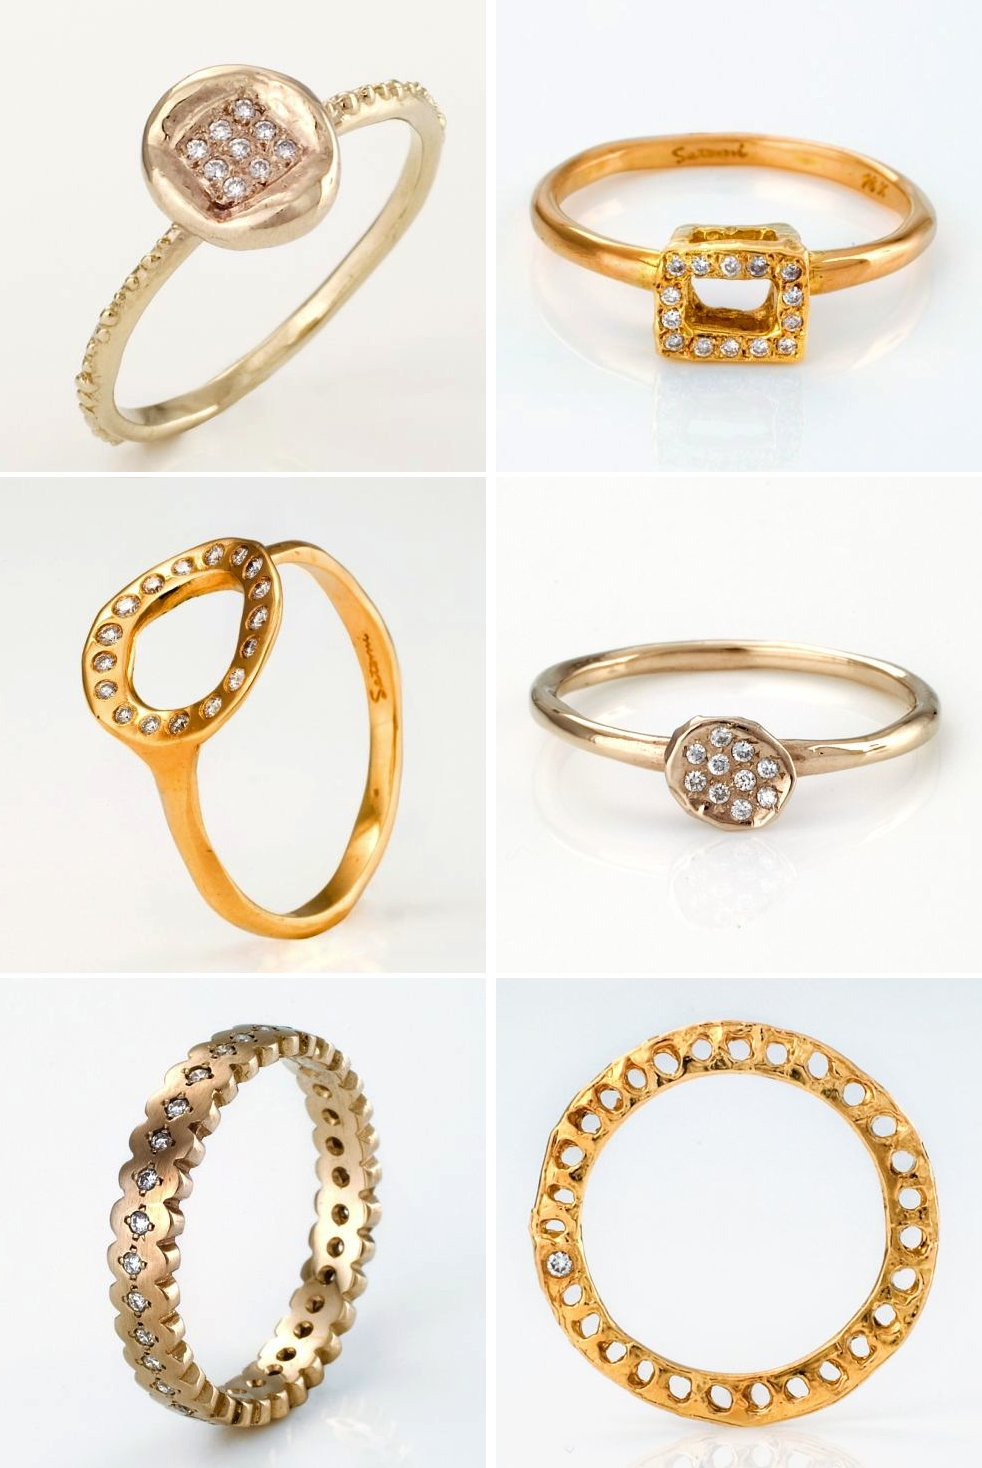 Unique-engagement-rings-and-wedding-bands-that-sparkle-brighter.full